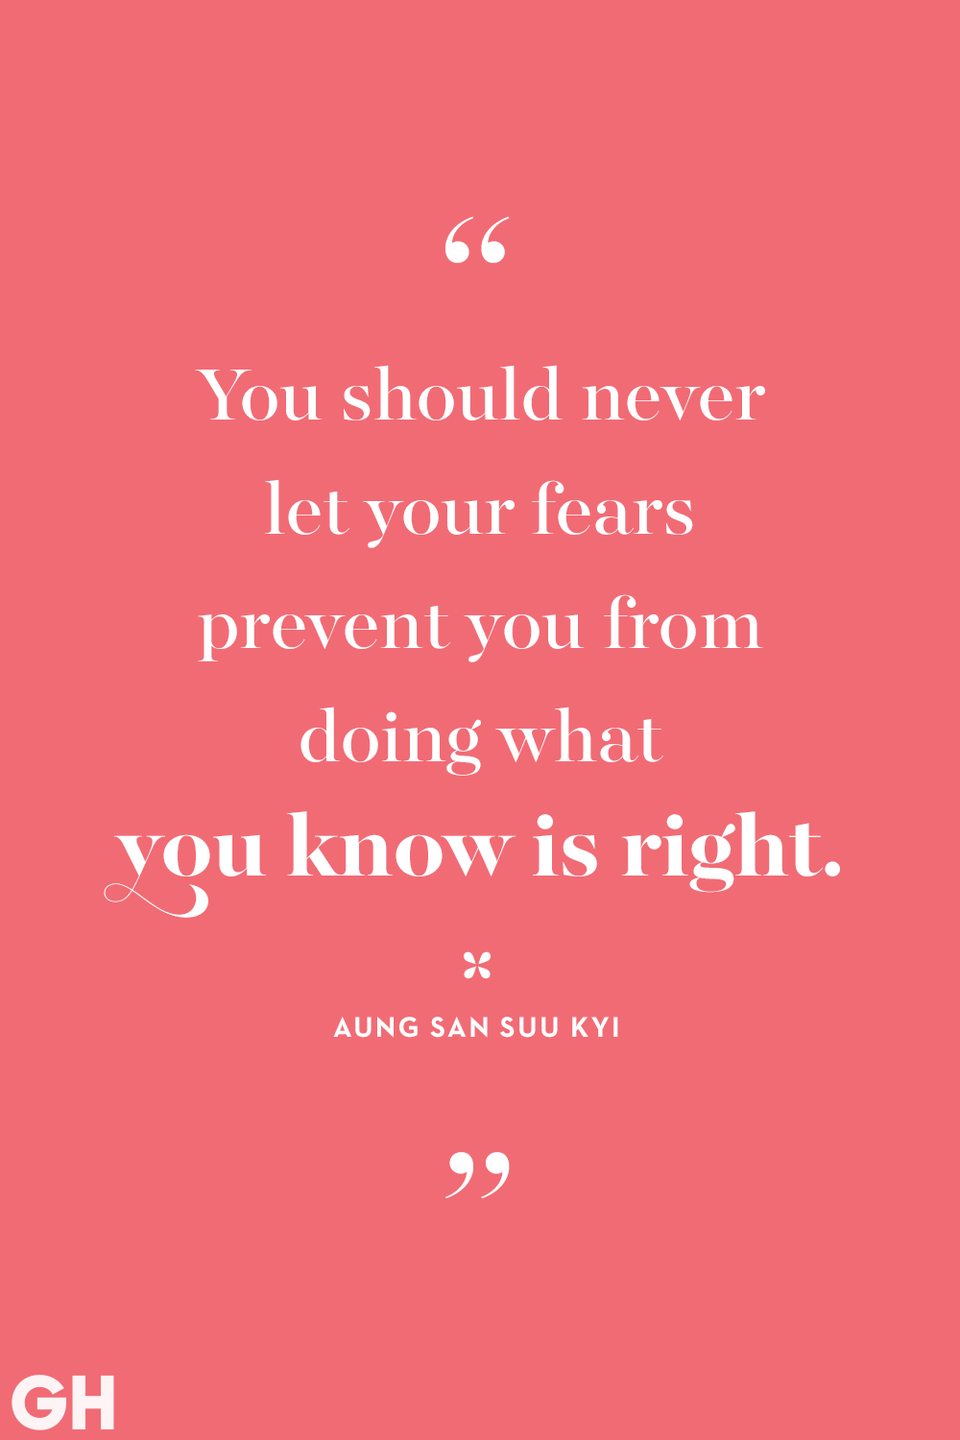 <p>You should never let your fears prevent you from doing what you know is right.</p>